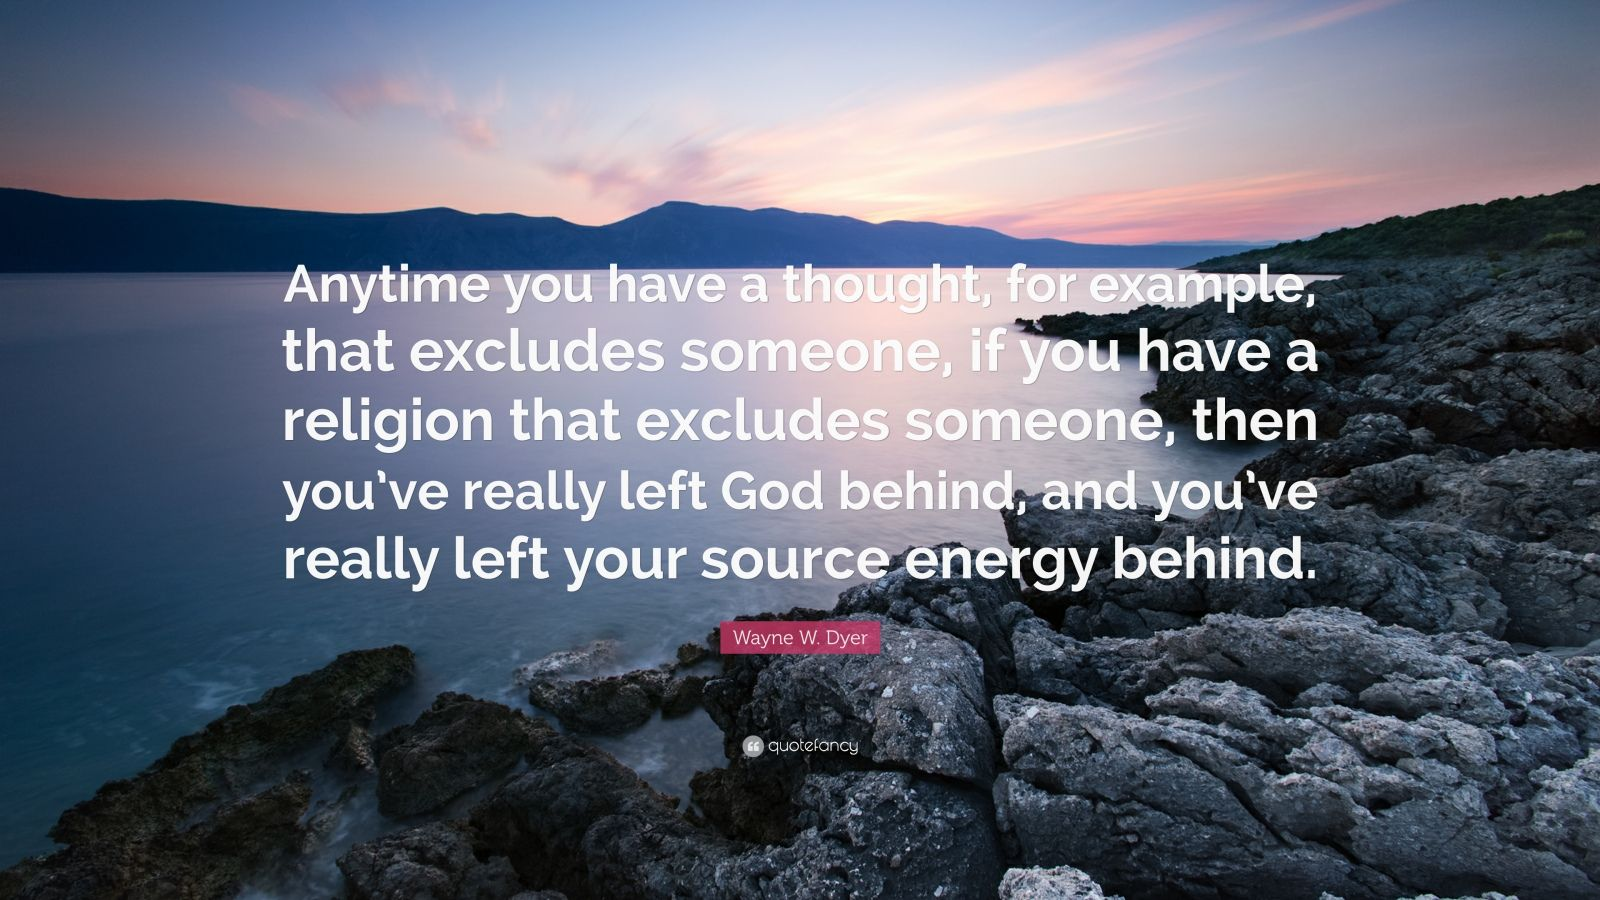 """Wayne W. Dyer Quote: """"Anytime you have a thought, for example, that excludes someone, if you have a religion that excludes someone, then you've really left God behind, and you've really left your source energy behind."""""""